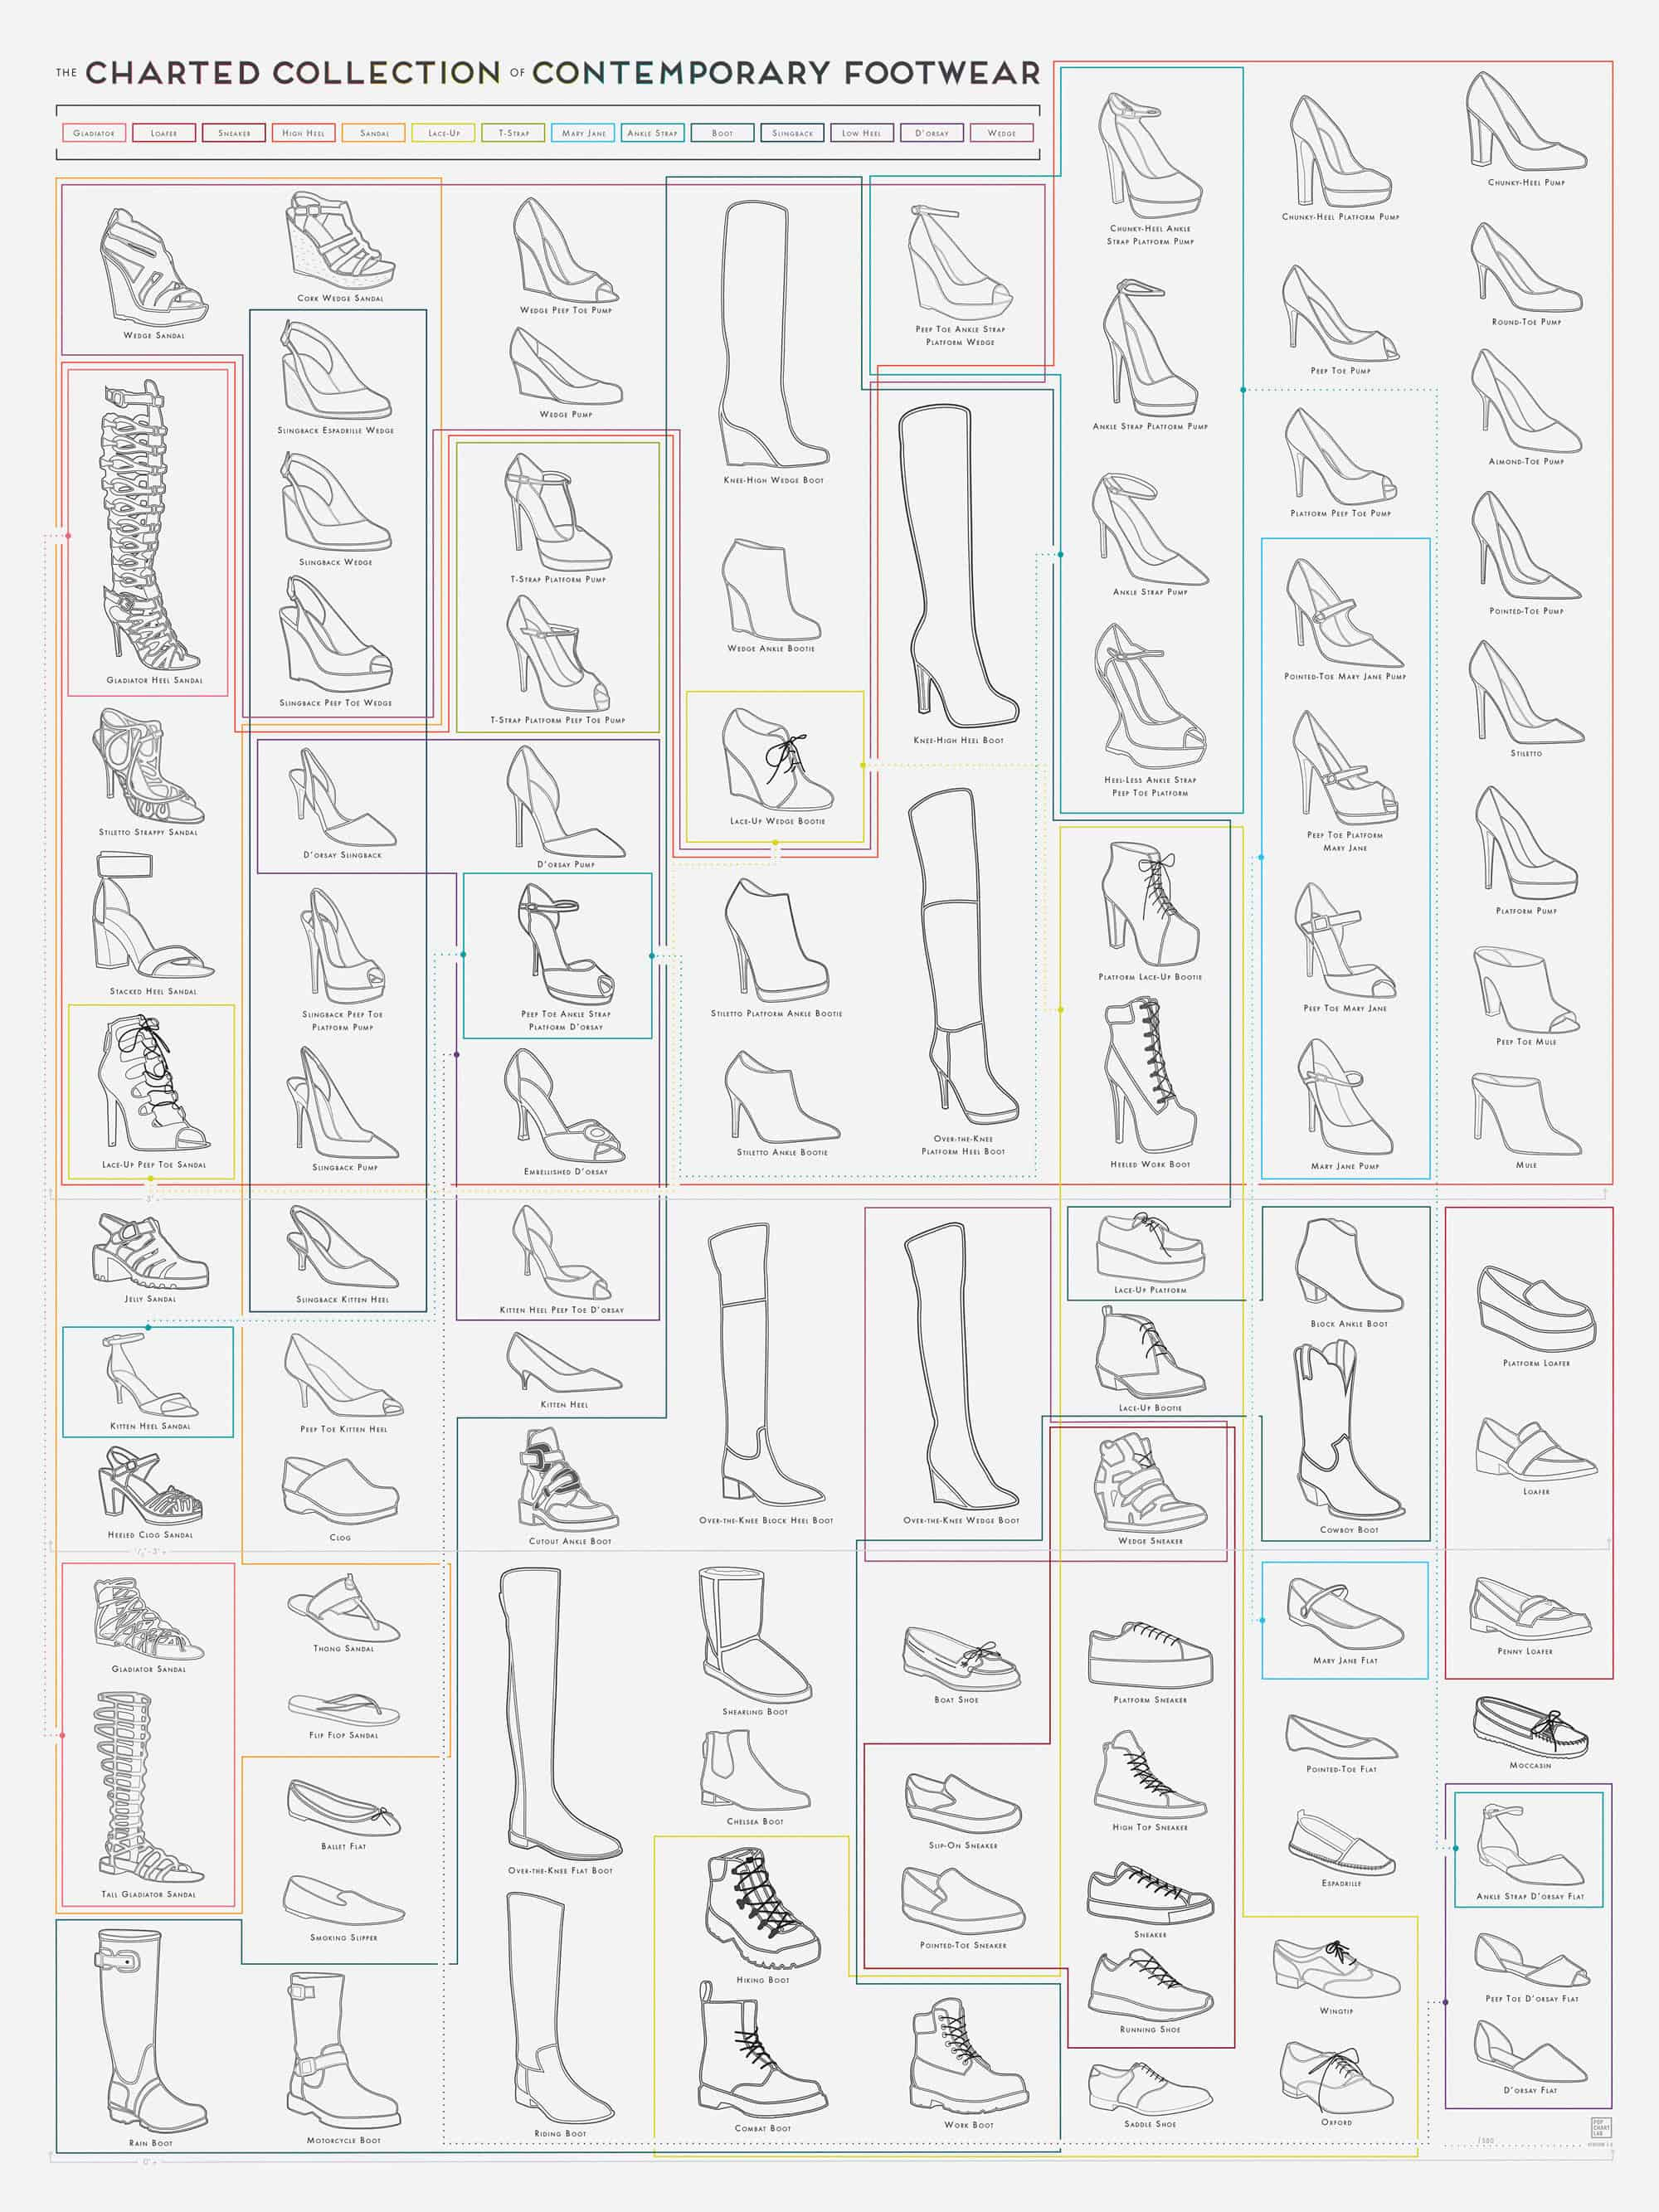 A Complete Guide to Contemporary Footwear – Fashion – Baap Graphics